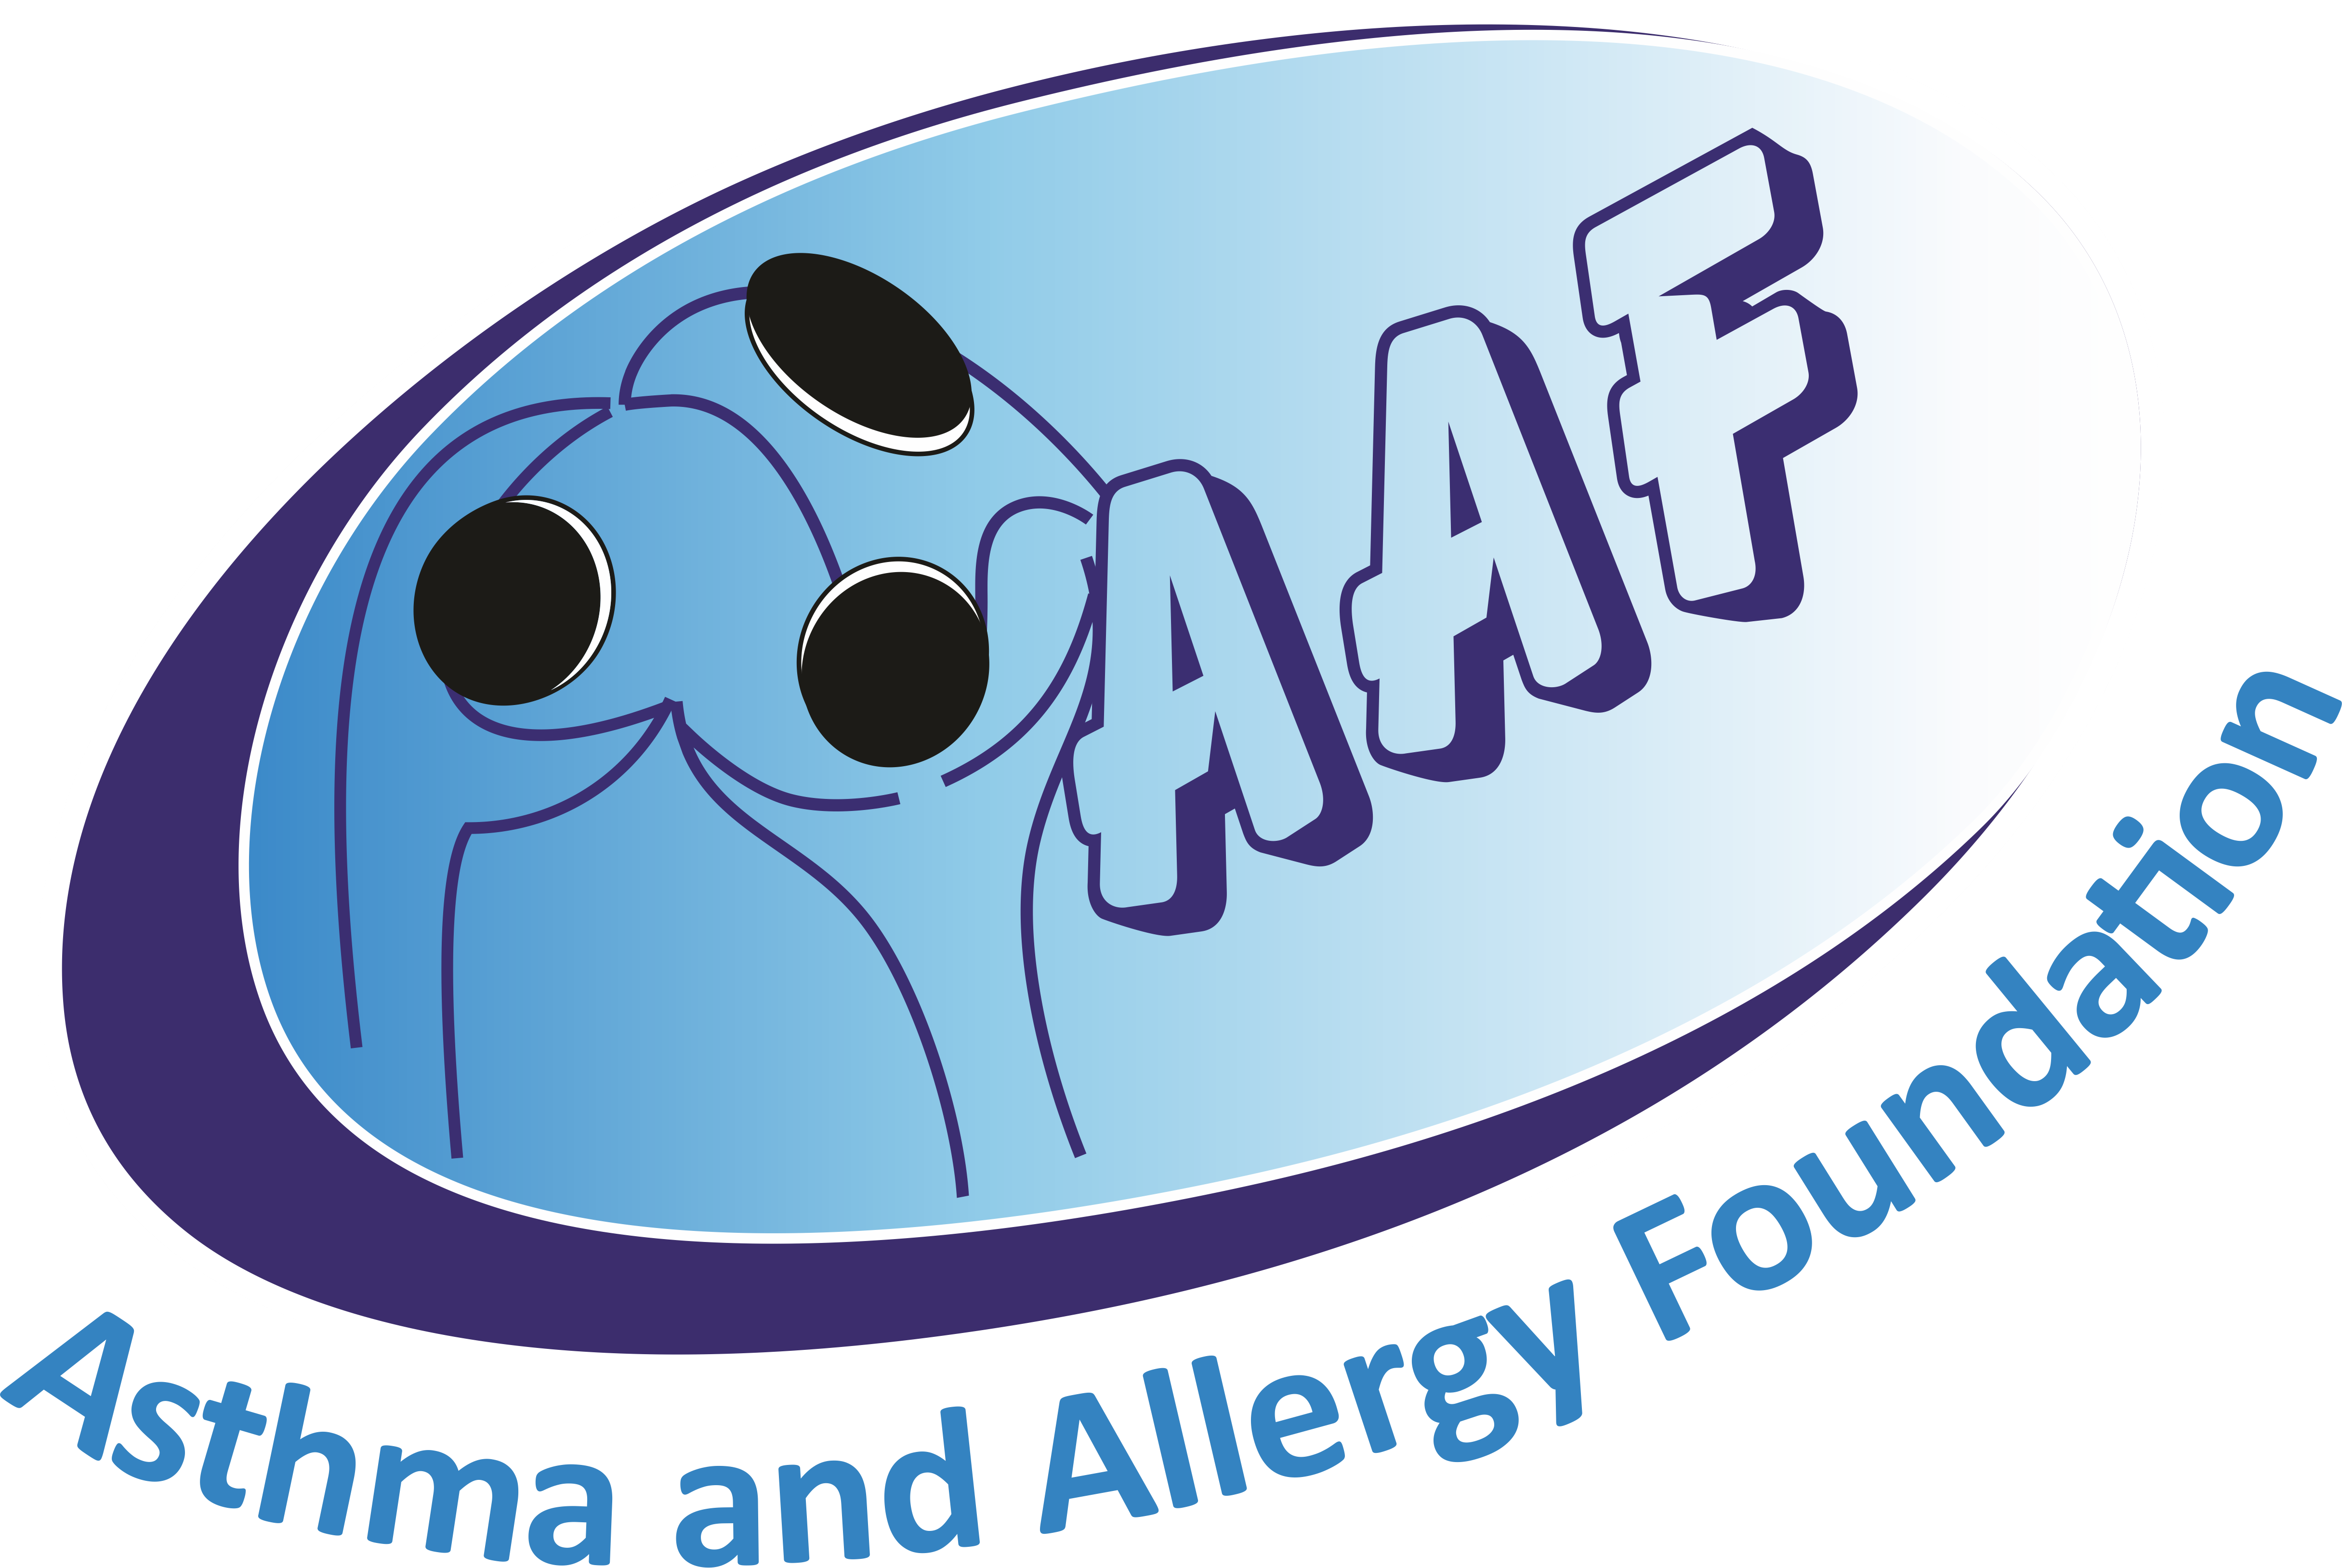 Information aberdeen asthma and. Flu clipart dust allergy